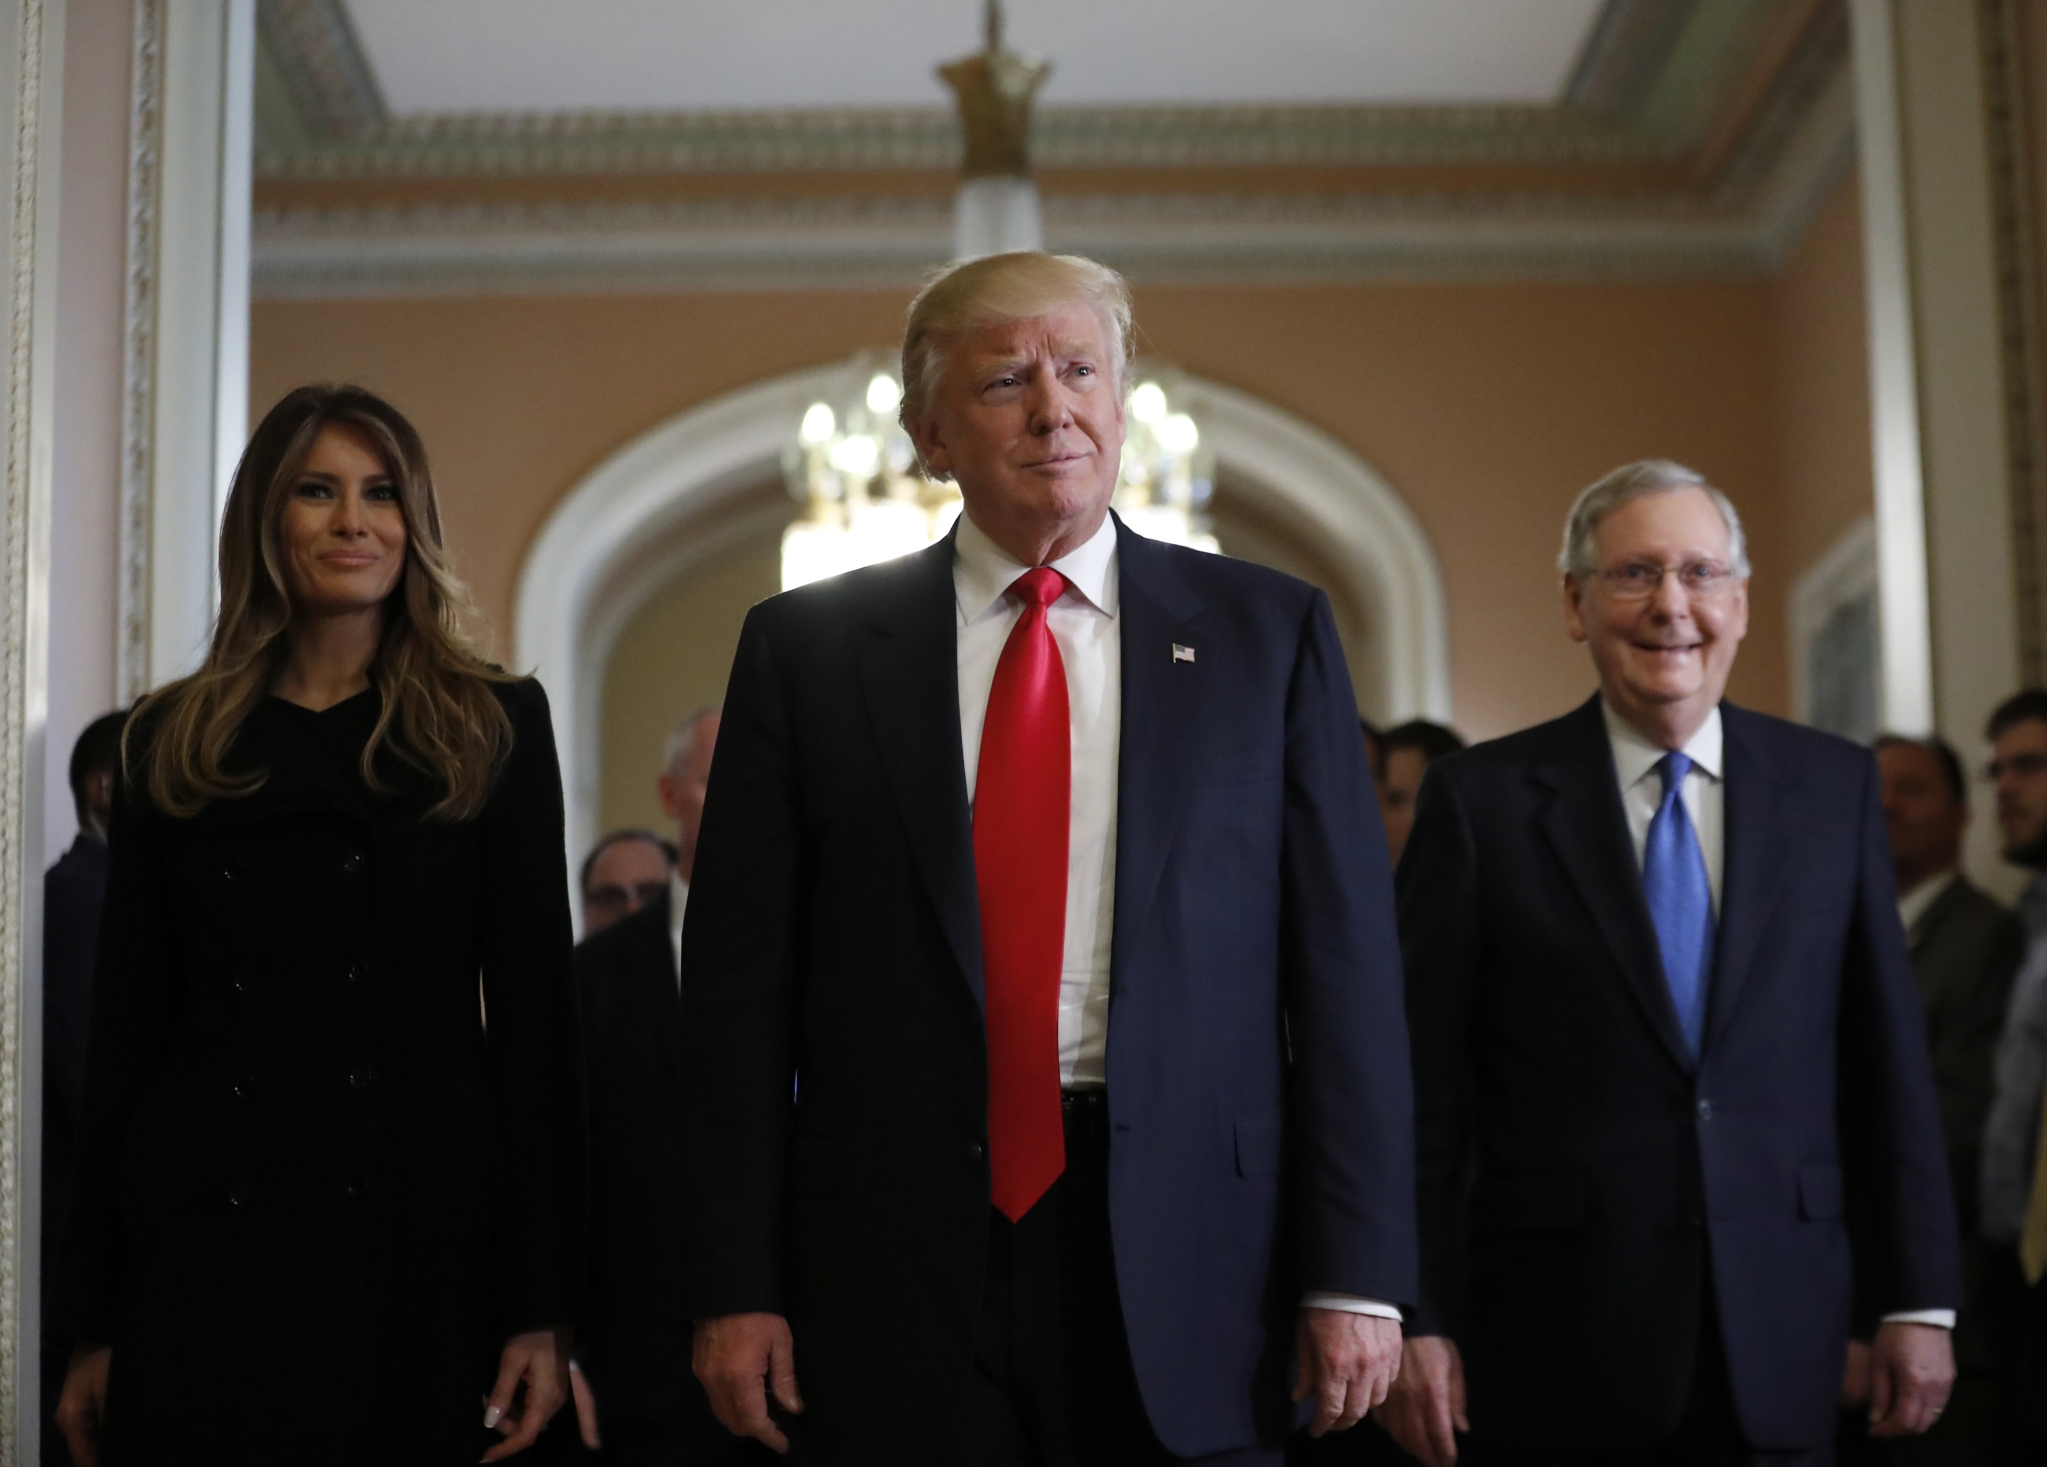 President-elect Donald Trump and his wife Melania walk with Senate Majority  Leader Mitch McConnell